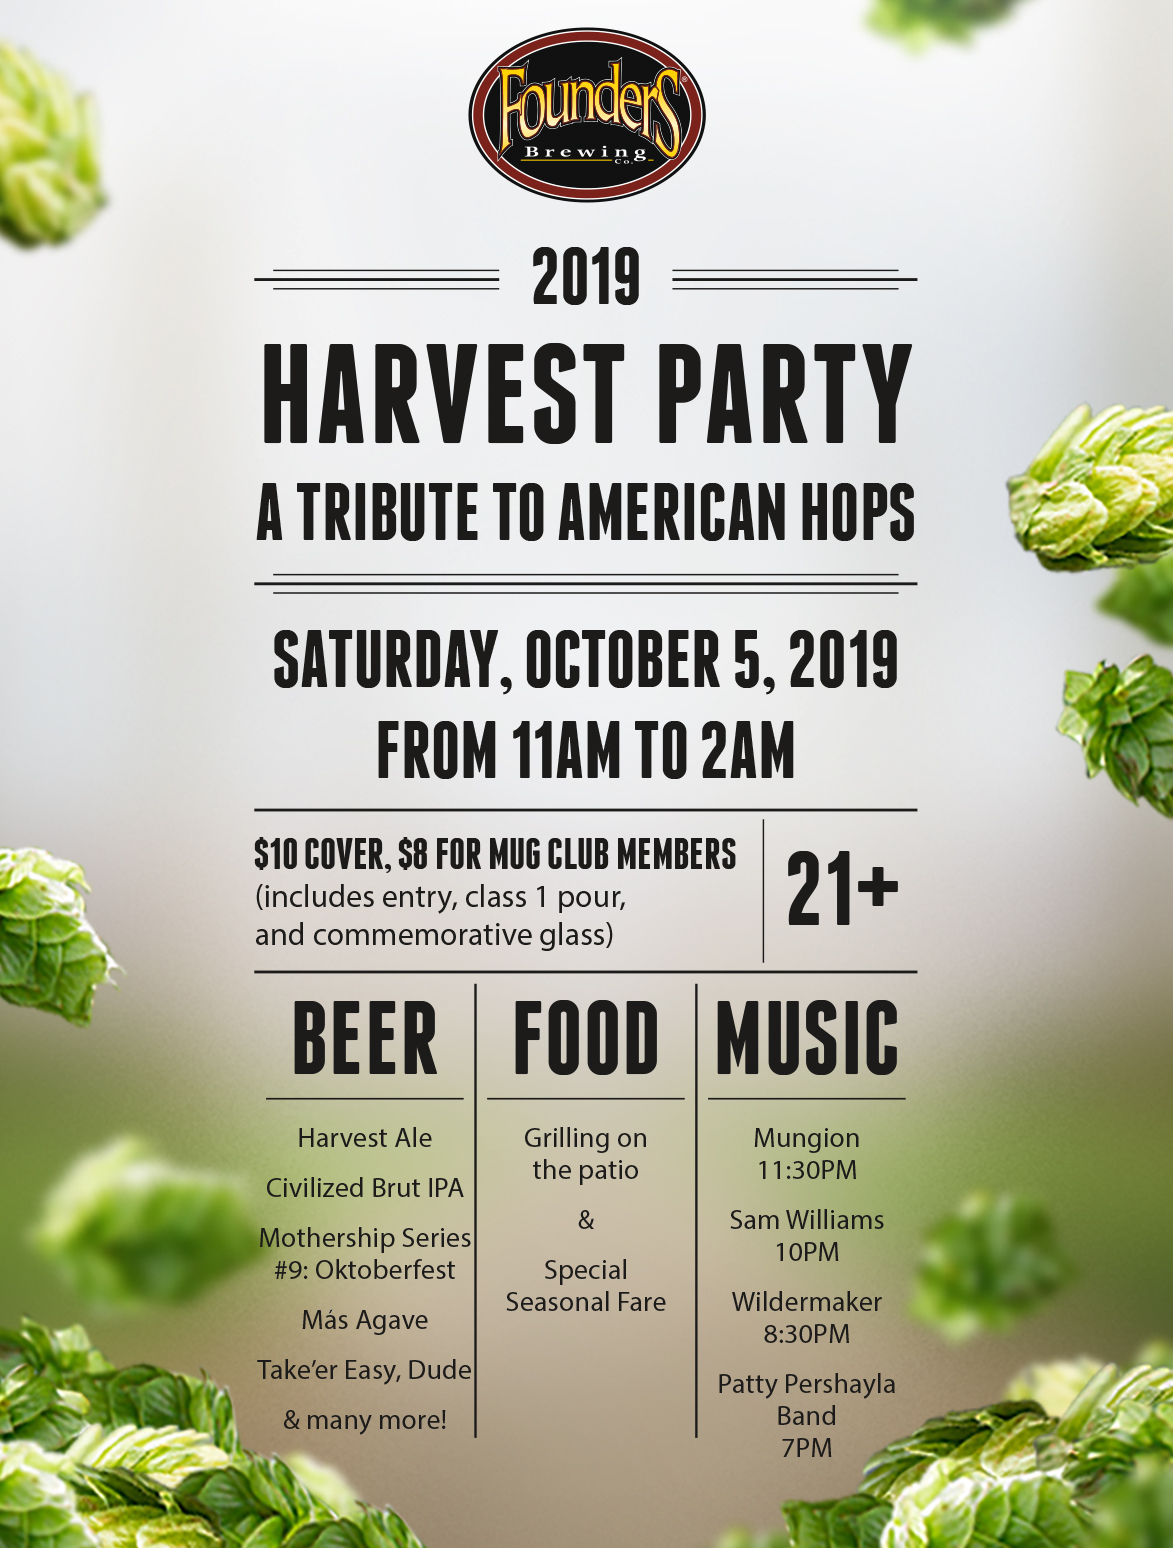 2019 Harvest Party event poster hosted by Founders Brewing Co.